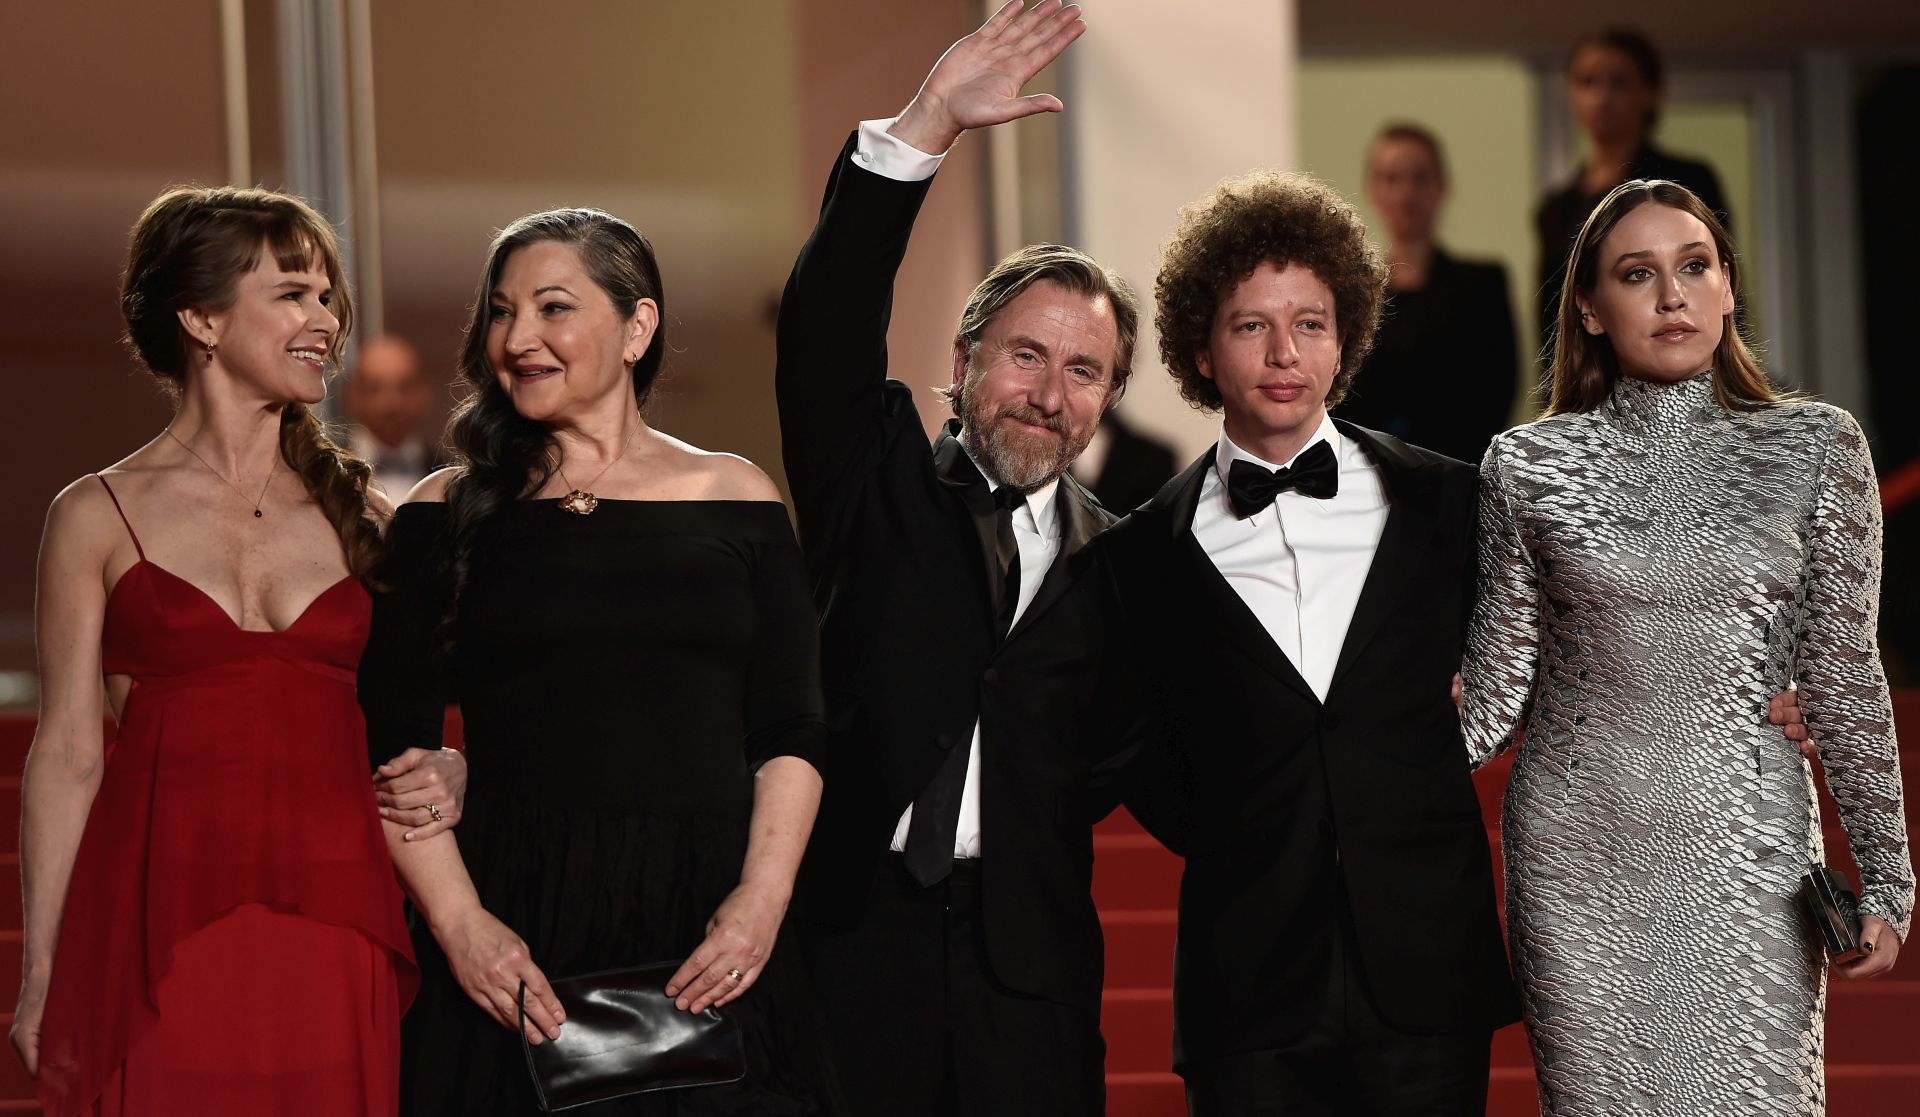 Nailea Norvind, Robin Bartlett, Tim Roth, Michel Franco i Sarah Sutherland. FOTO: Ian Gavan/Getty Images